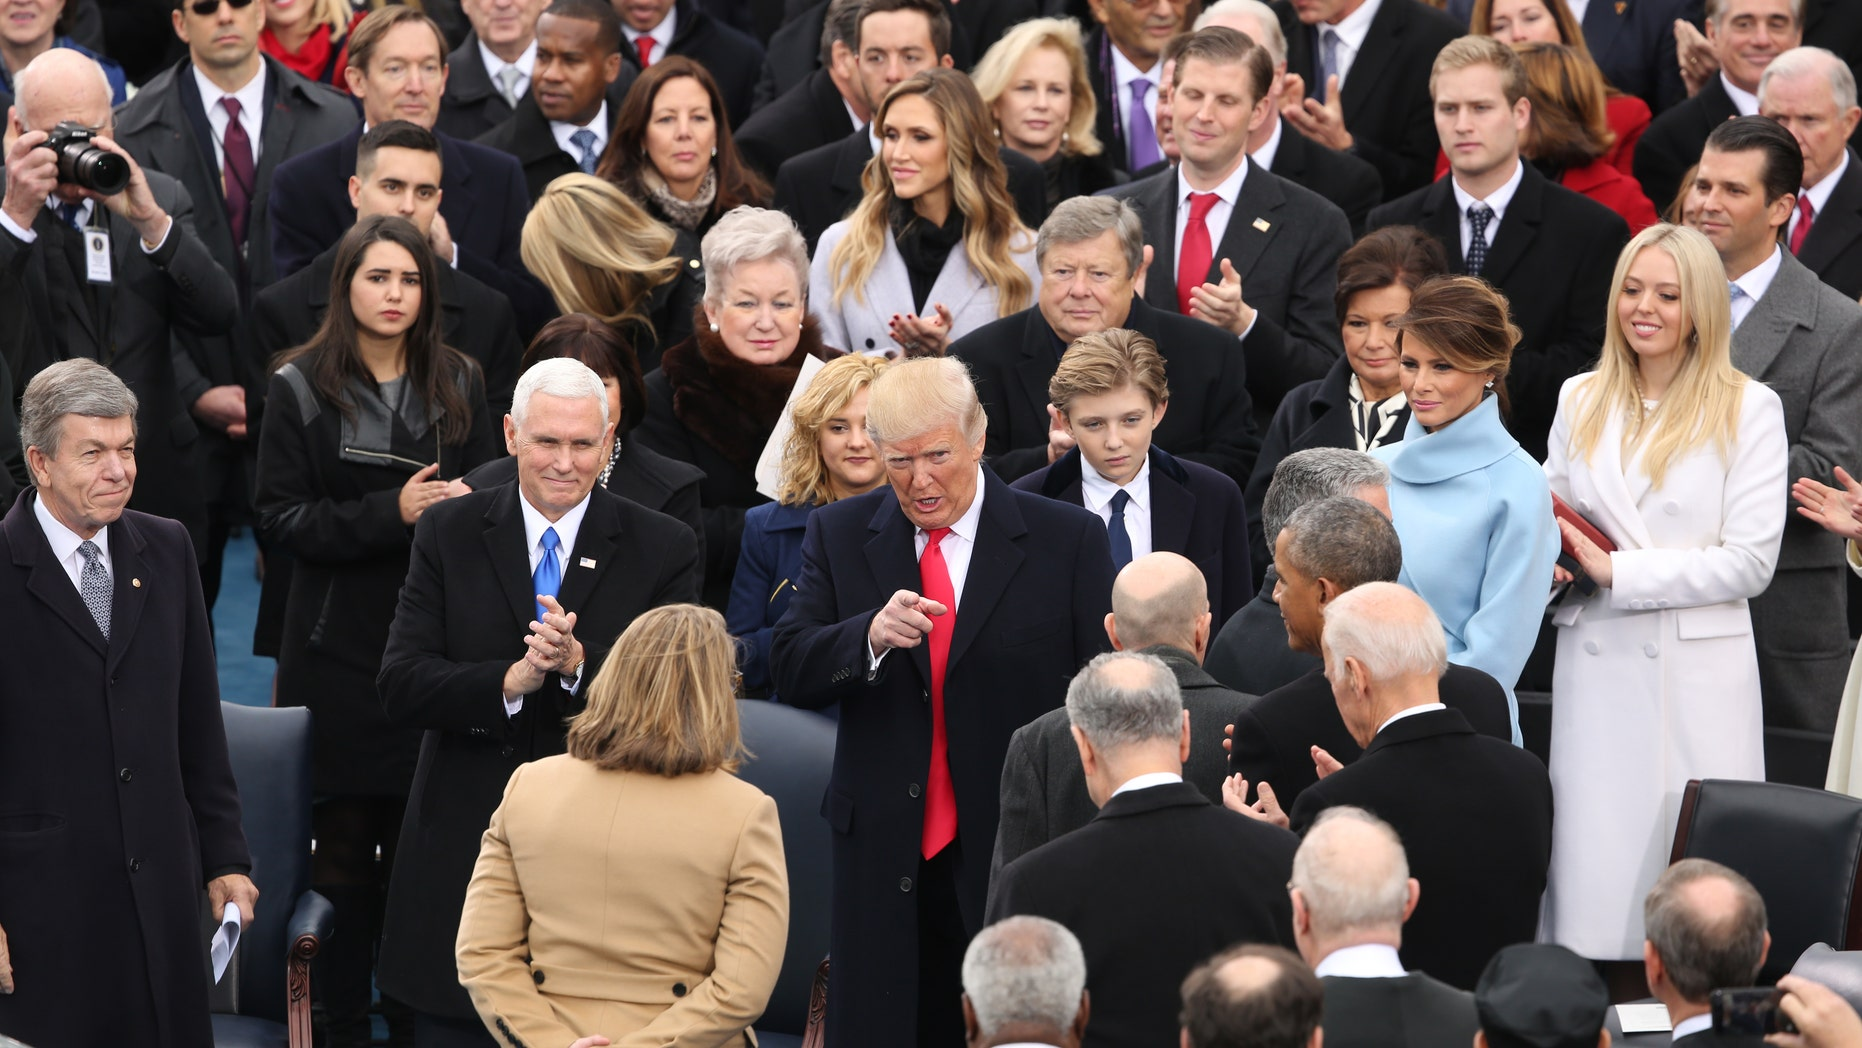 58th Presidential Inauguration at the U.S. Capitol for President-elect Donald Trump in Washington, Friday, Jan. 20, 2017.